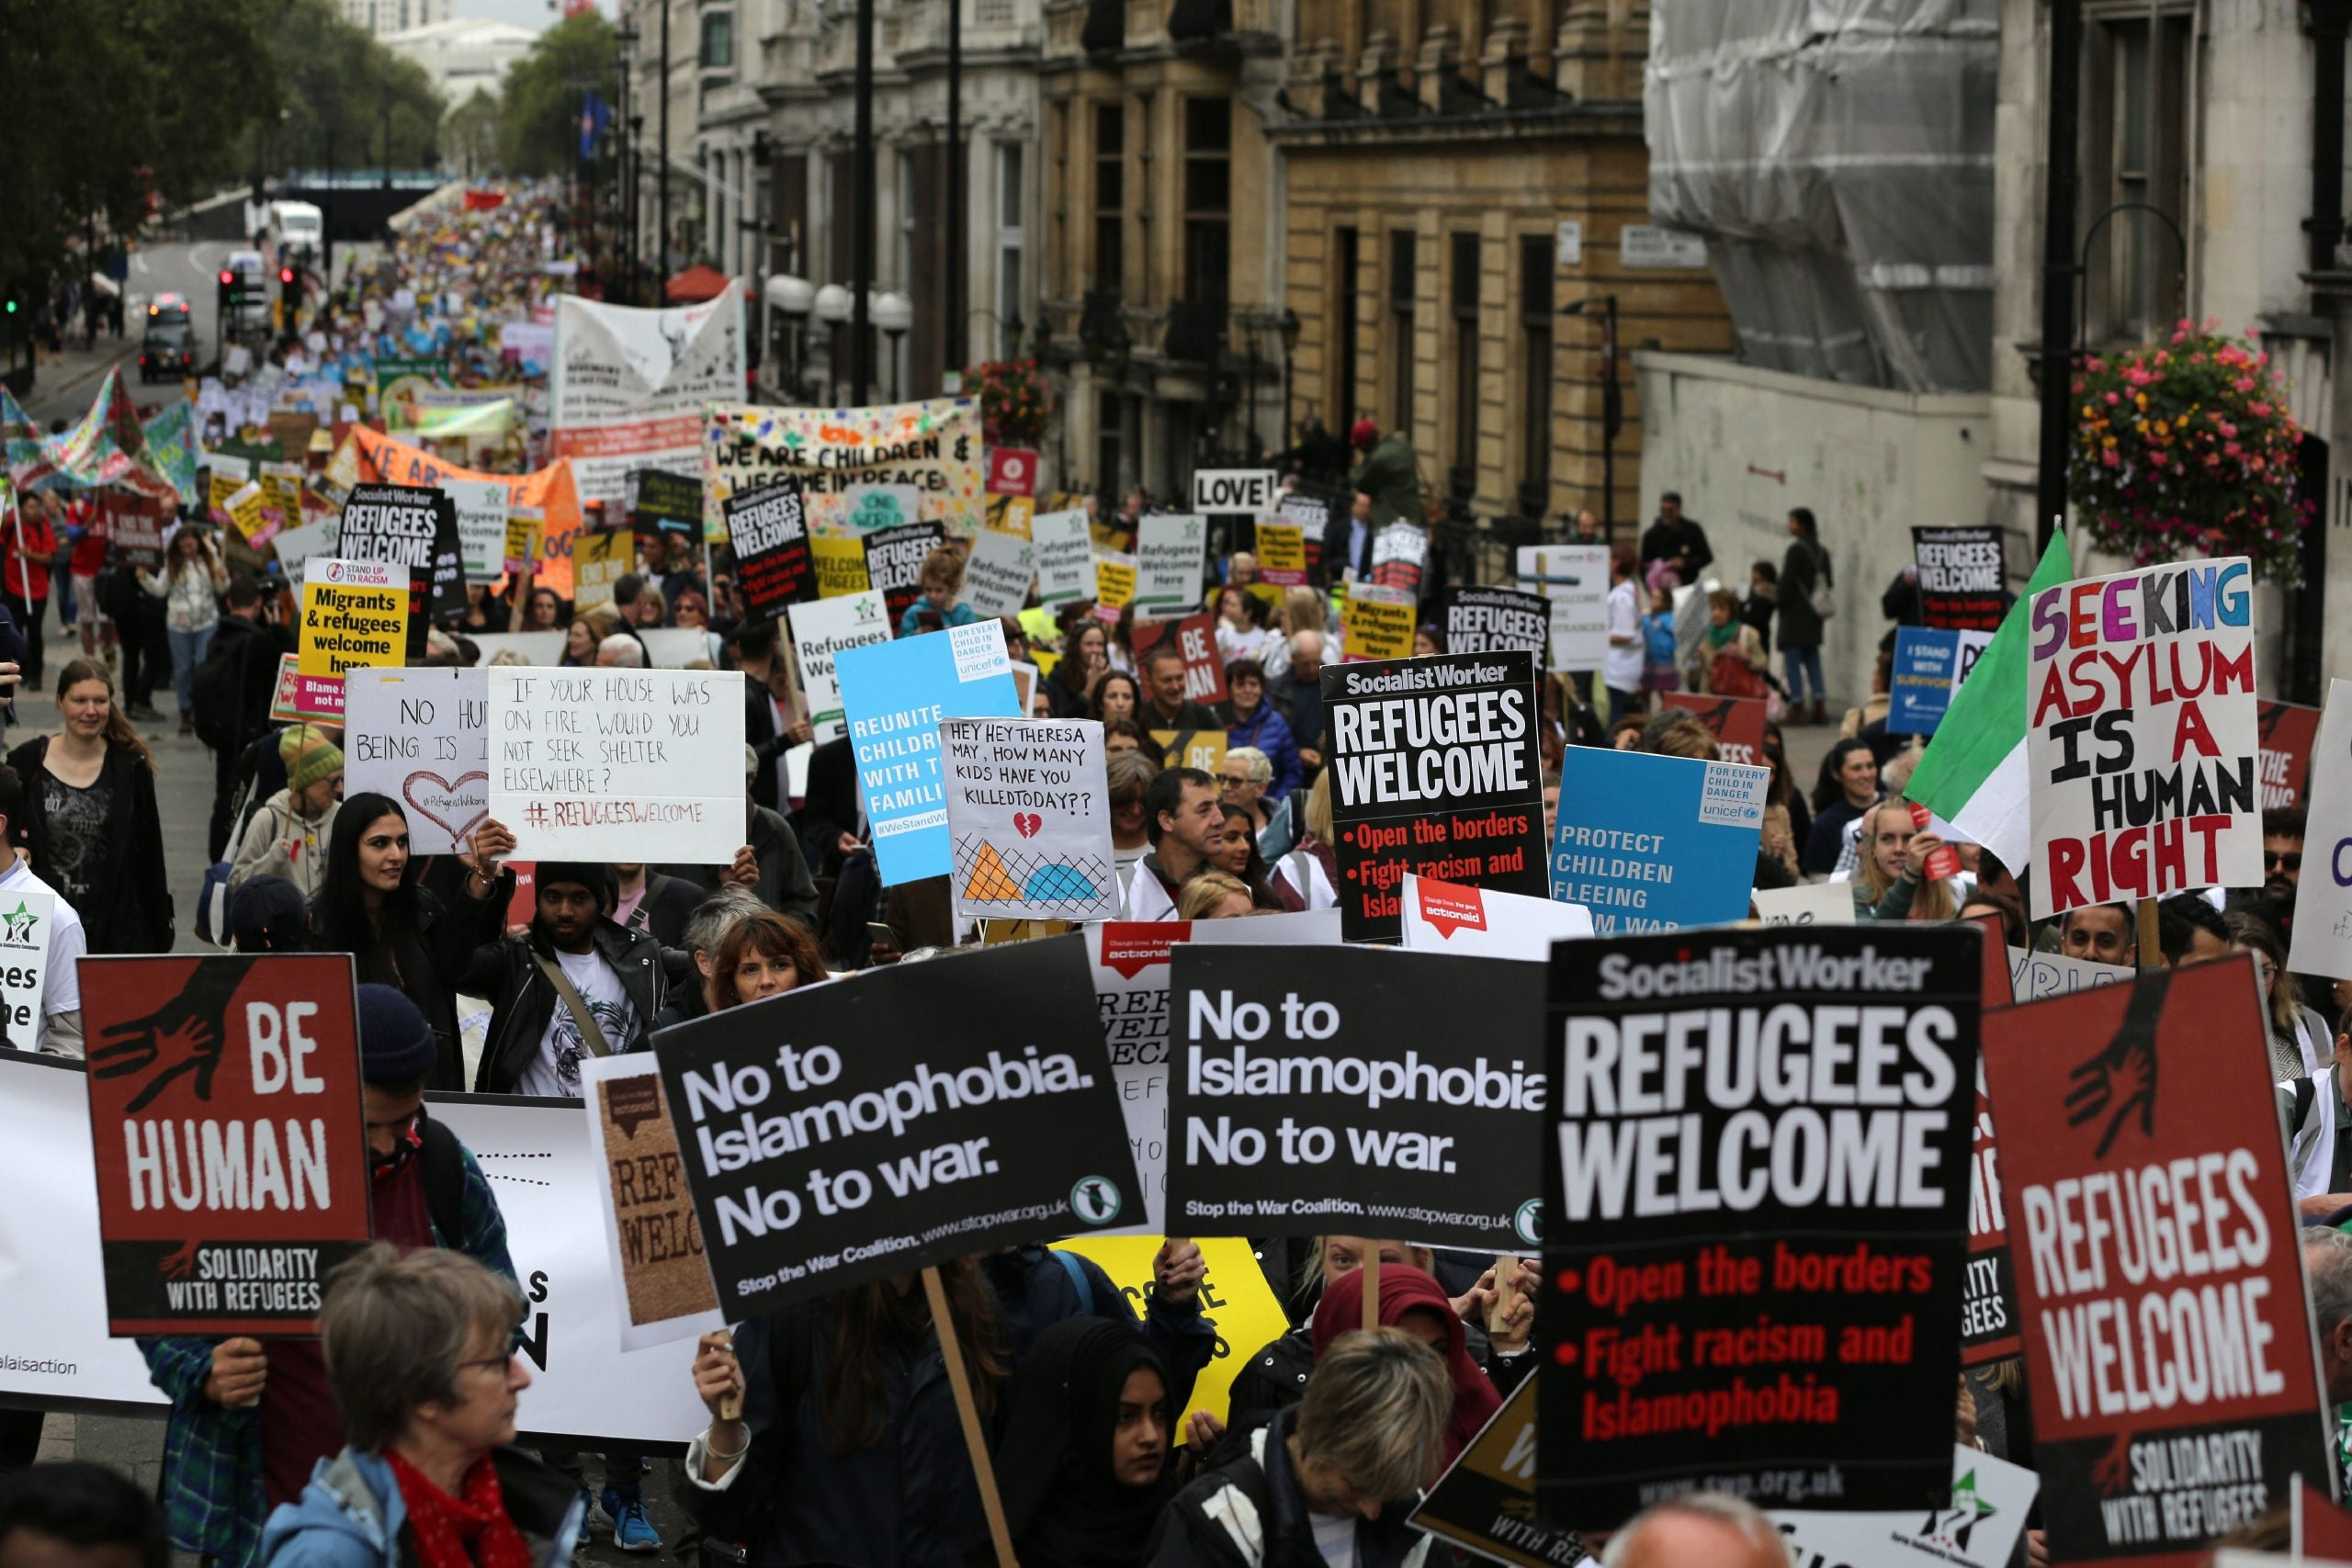 Tim Farron: The Tories' attitude to refugees shames our country